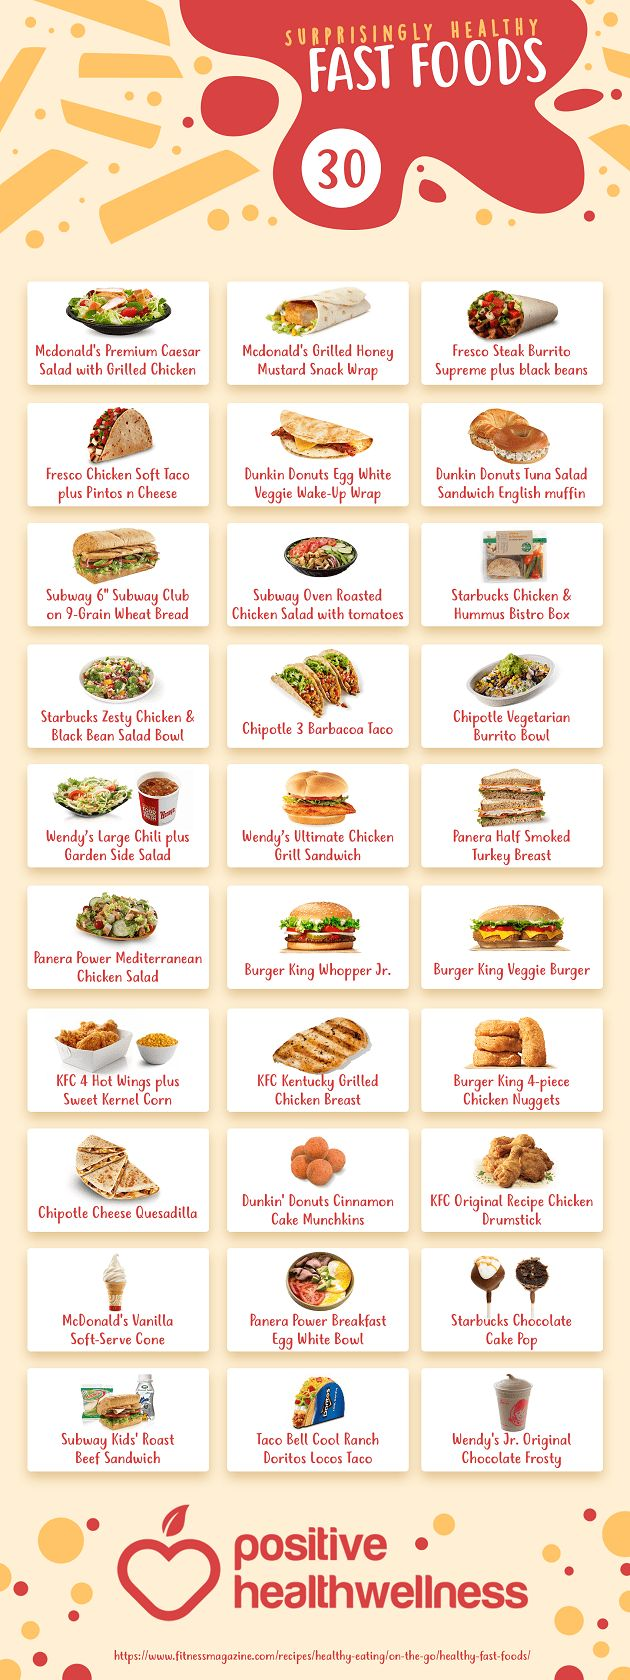 30 Surprisingly Healthy Fast Foods